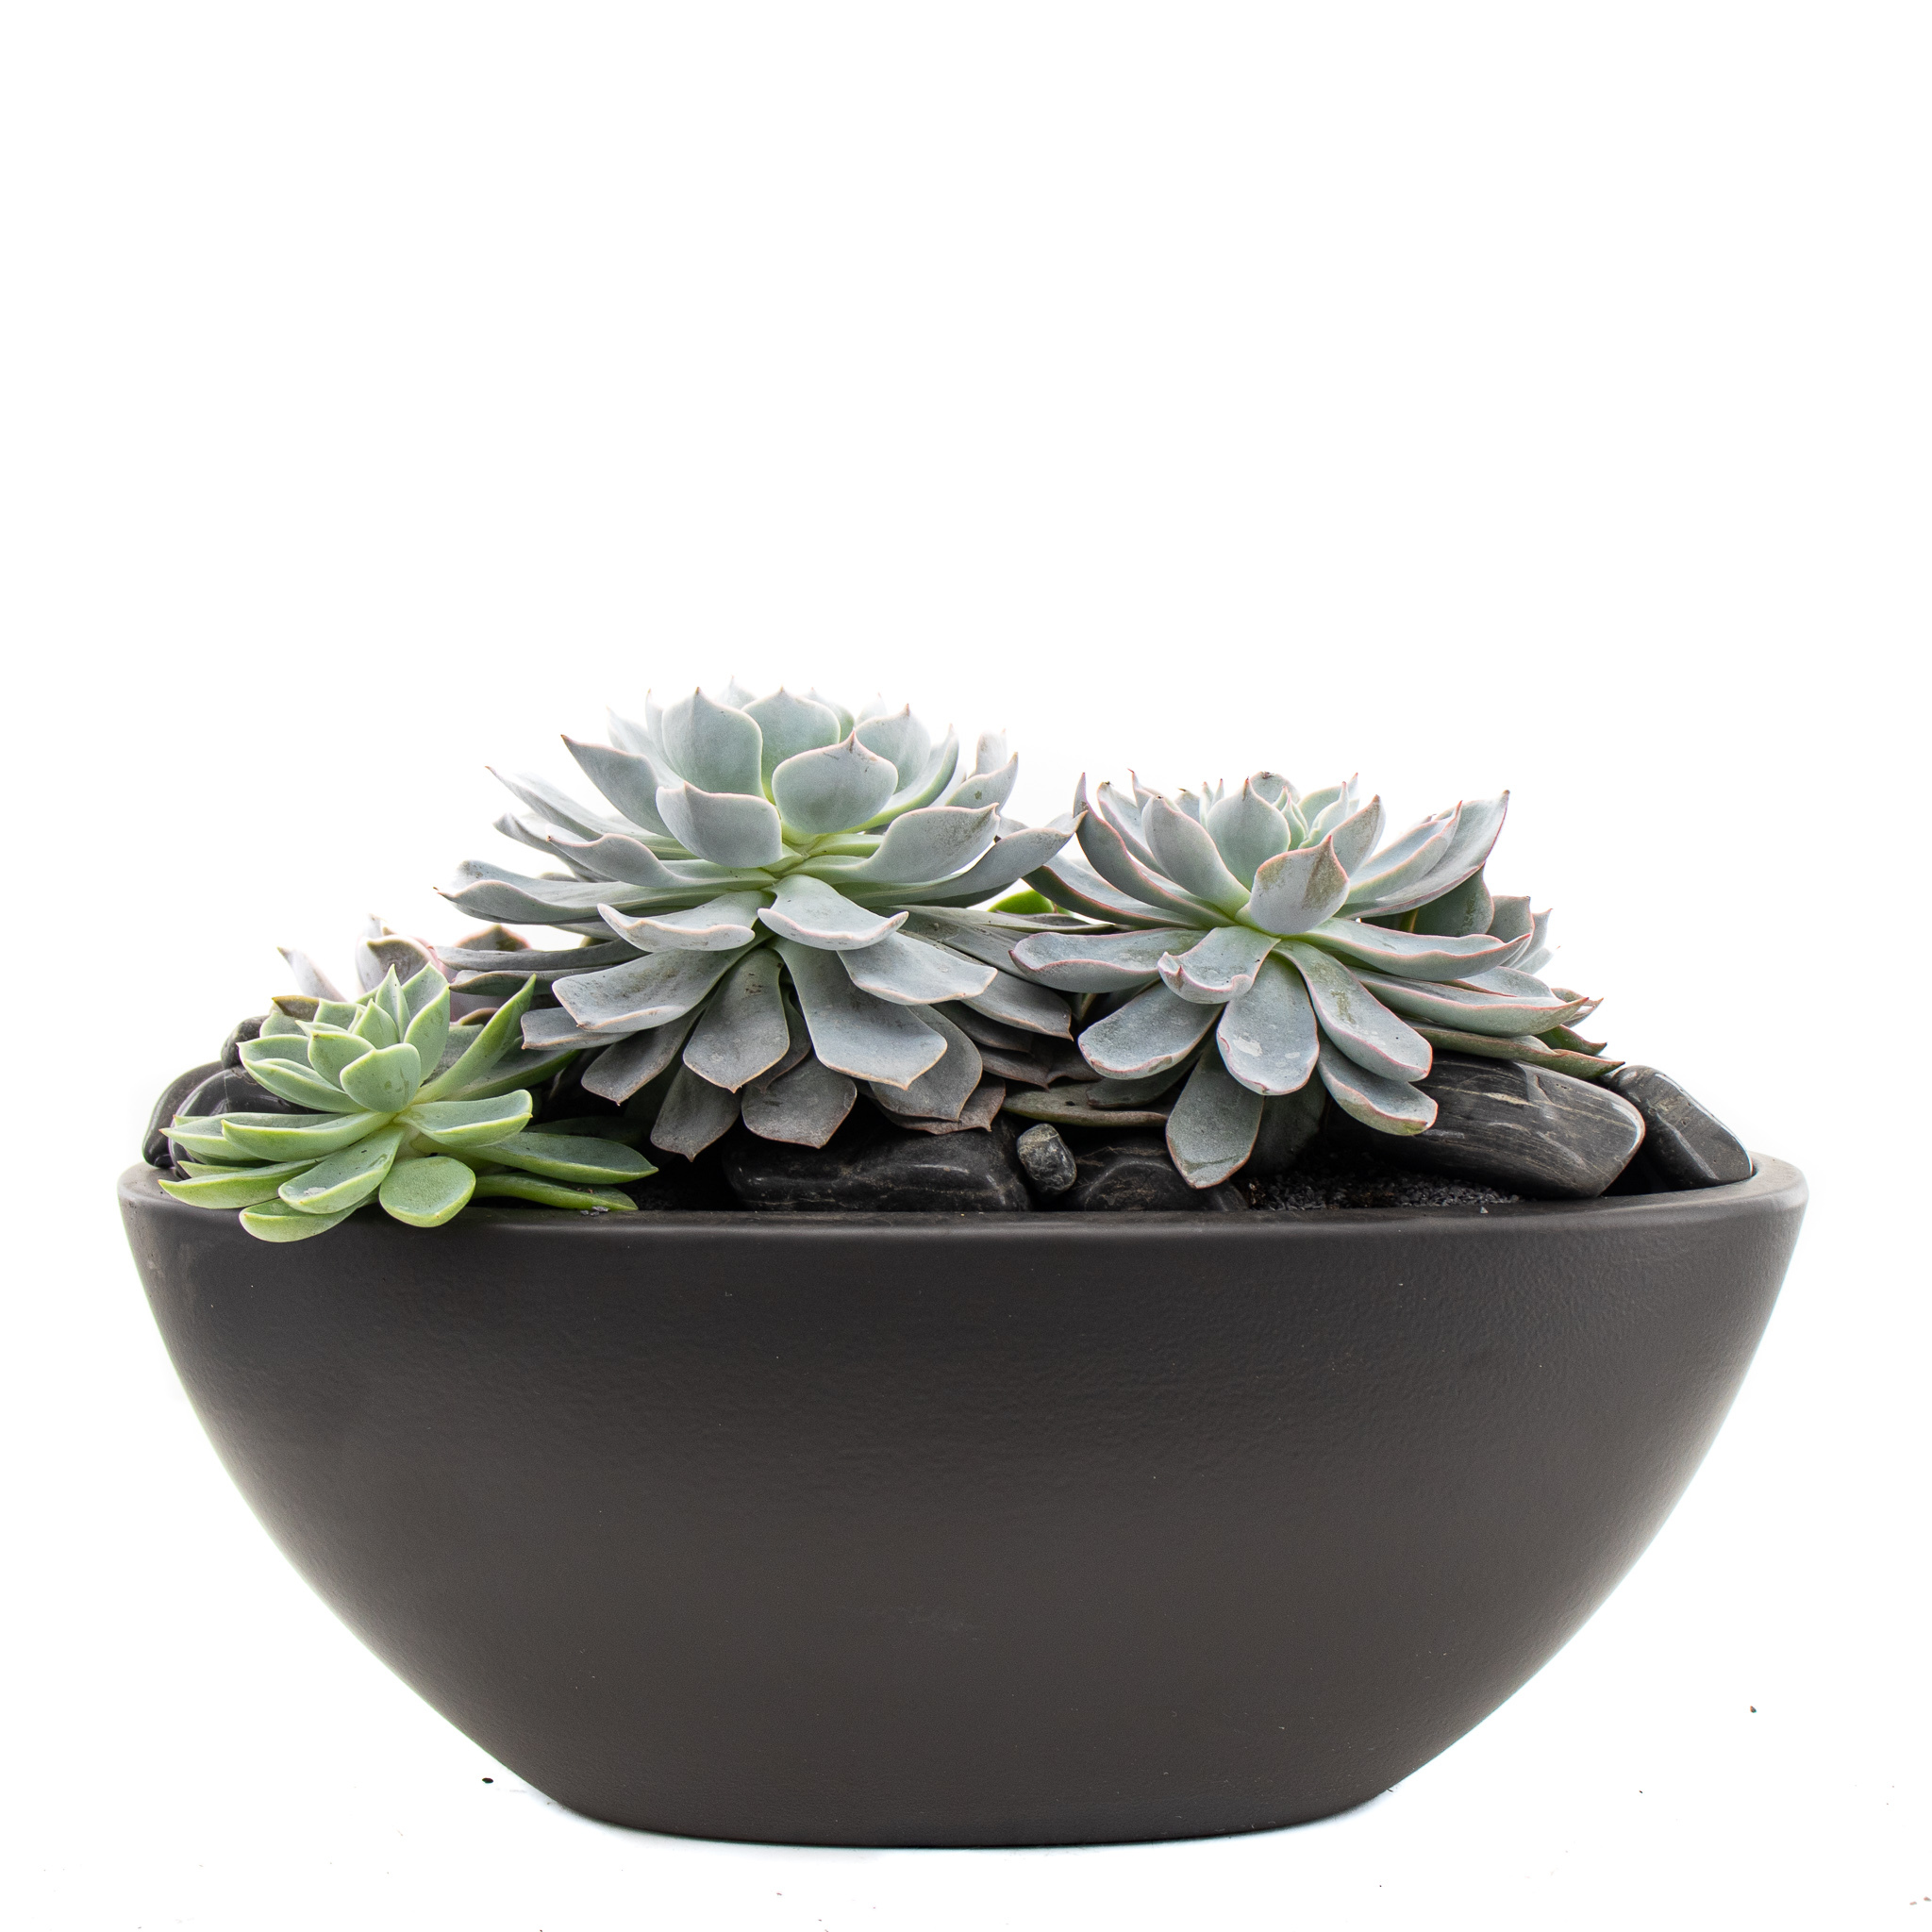 "Germany Boat Black Small - Succulents (7"" H x 11"" W)"